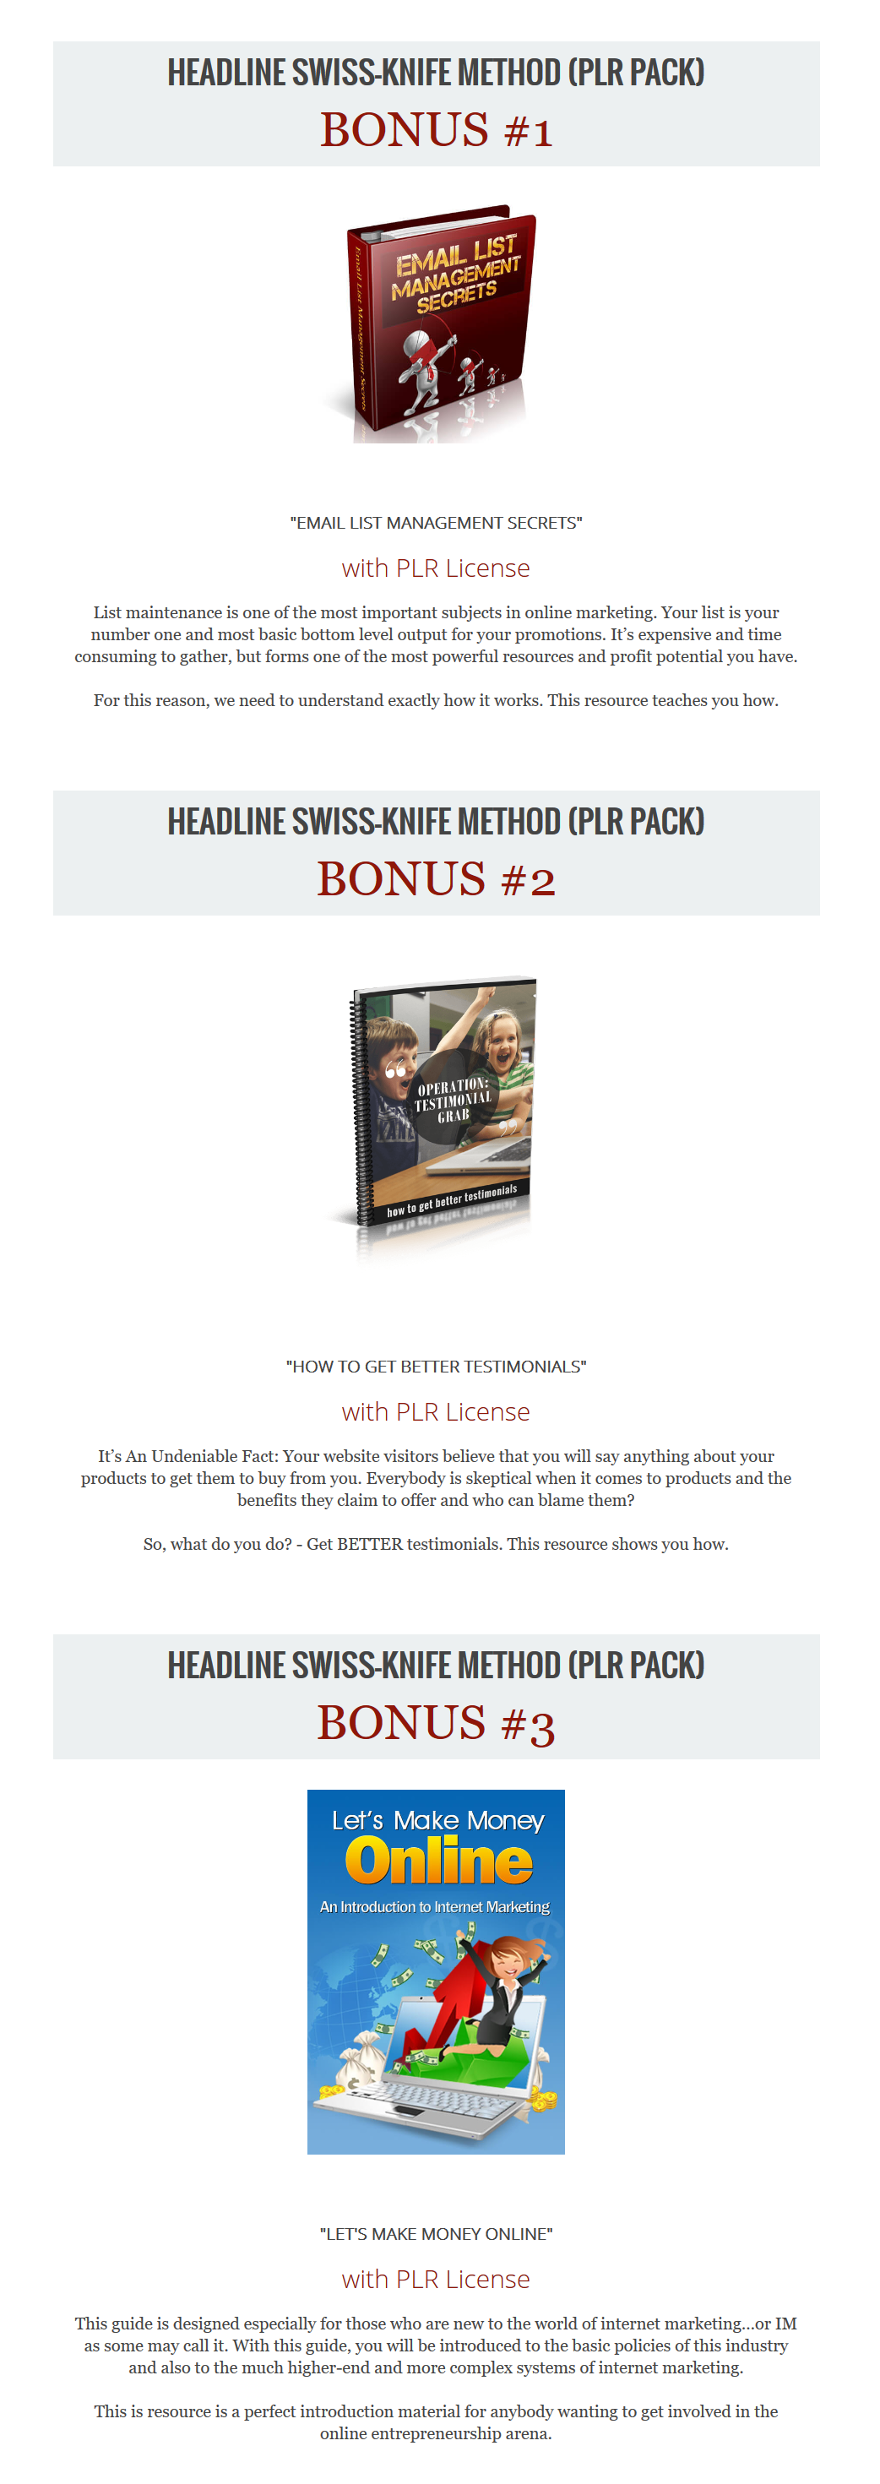 Headline Swiss-Knife Method PLR Bonuses